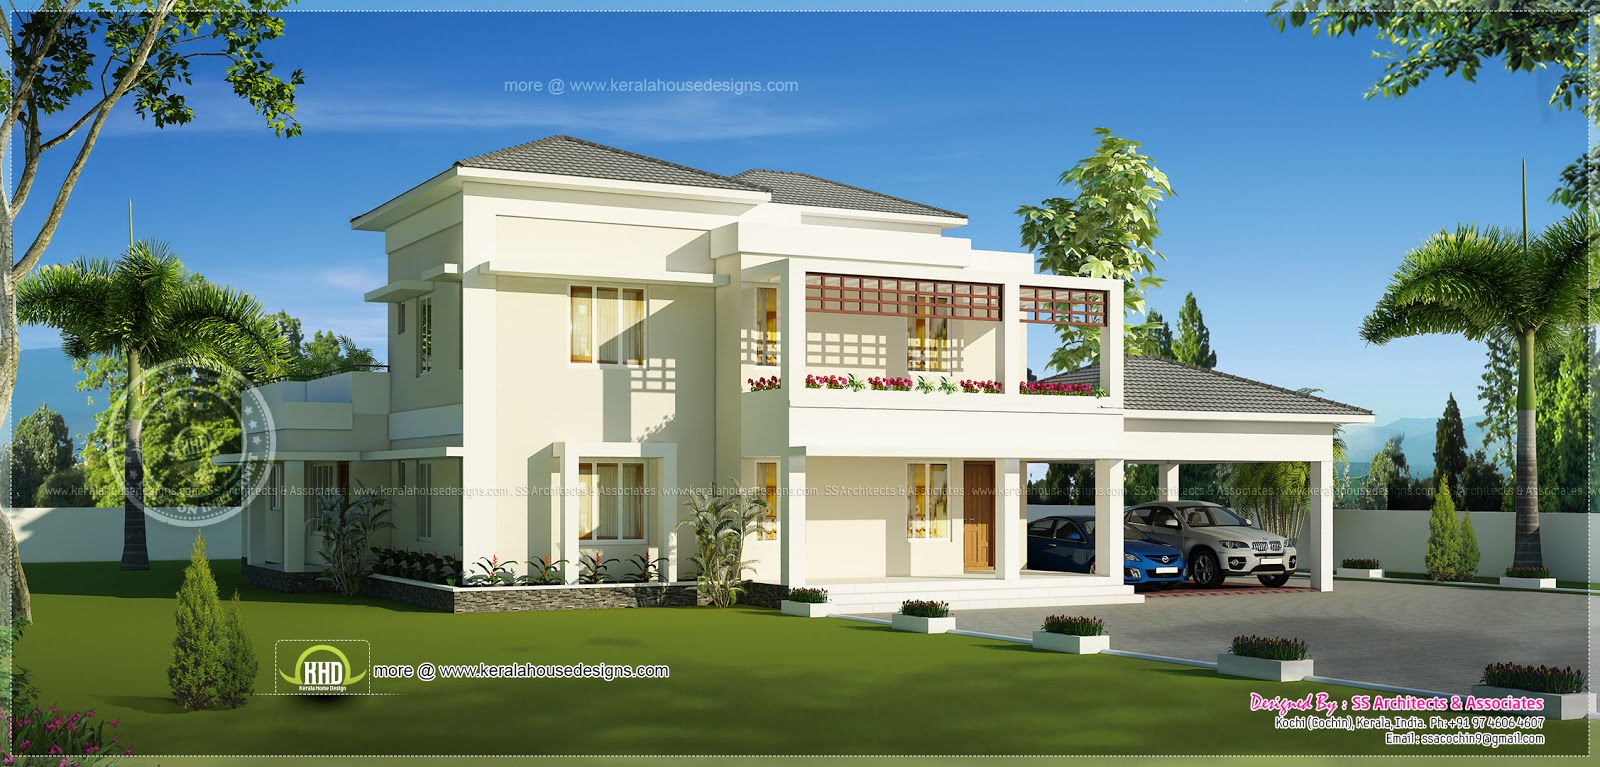 Beautiful double storey modern villa exterior kerala for Beautiful villas images